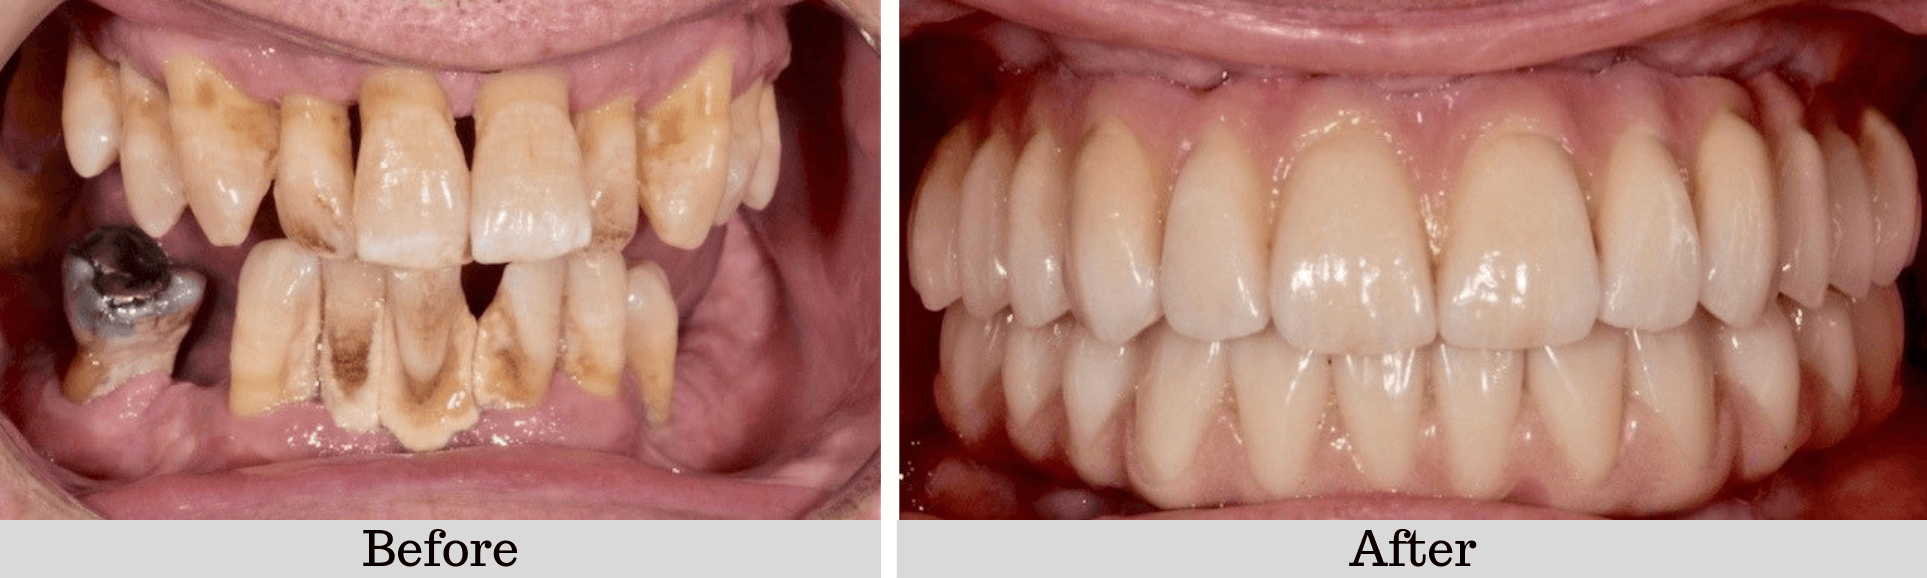 Full-mouth-fixed-bridge-Before-And-After